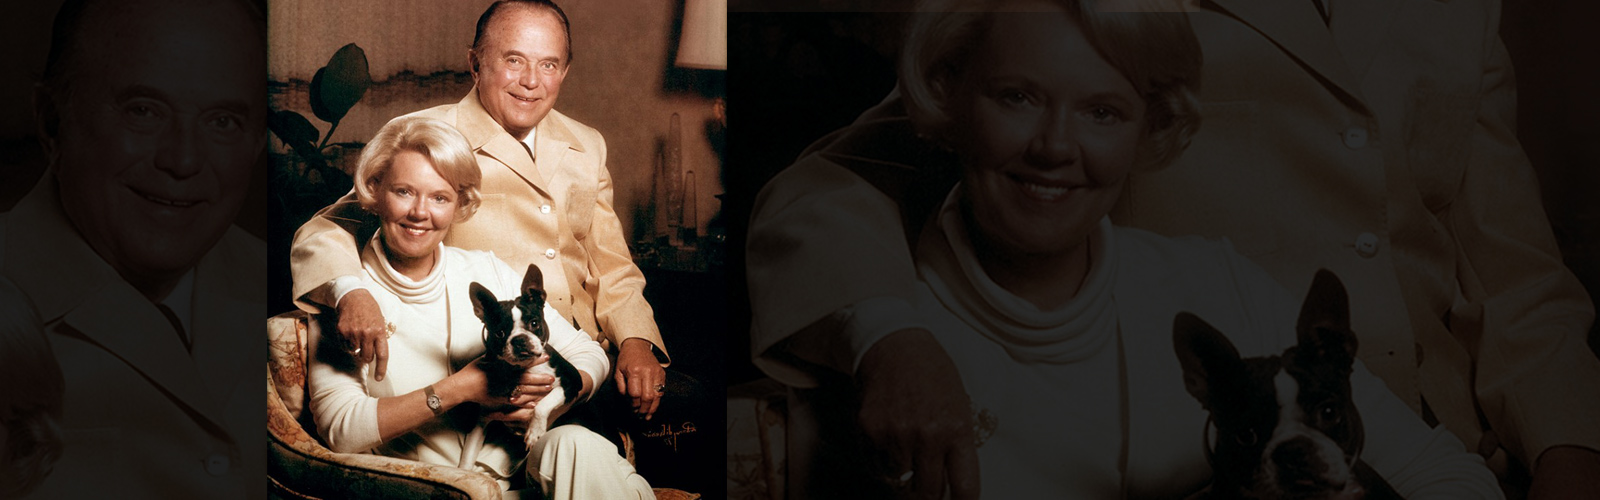 Image of Ray and Joan Kroc holding dog